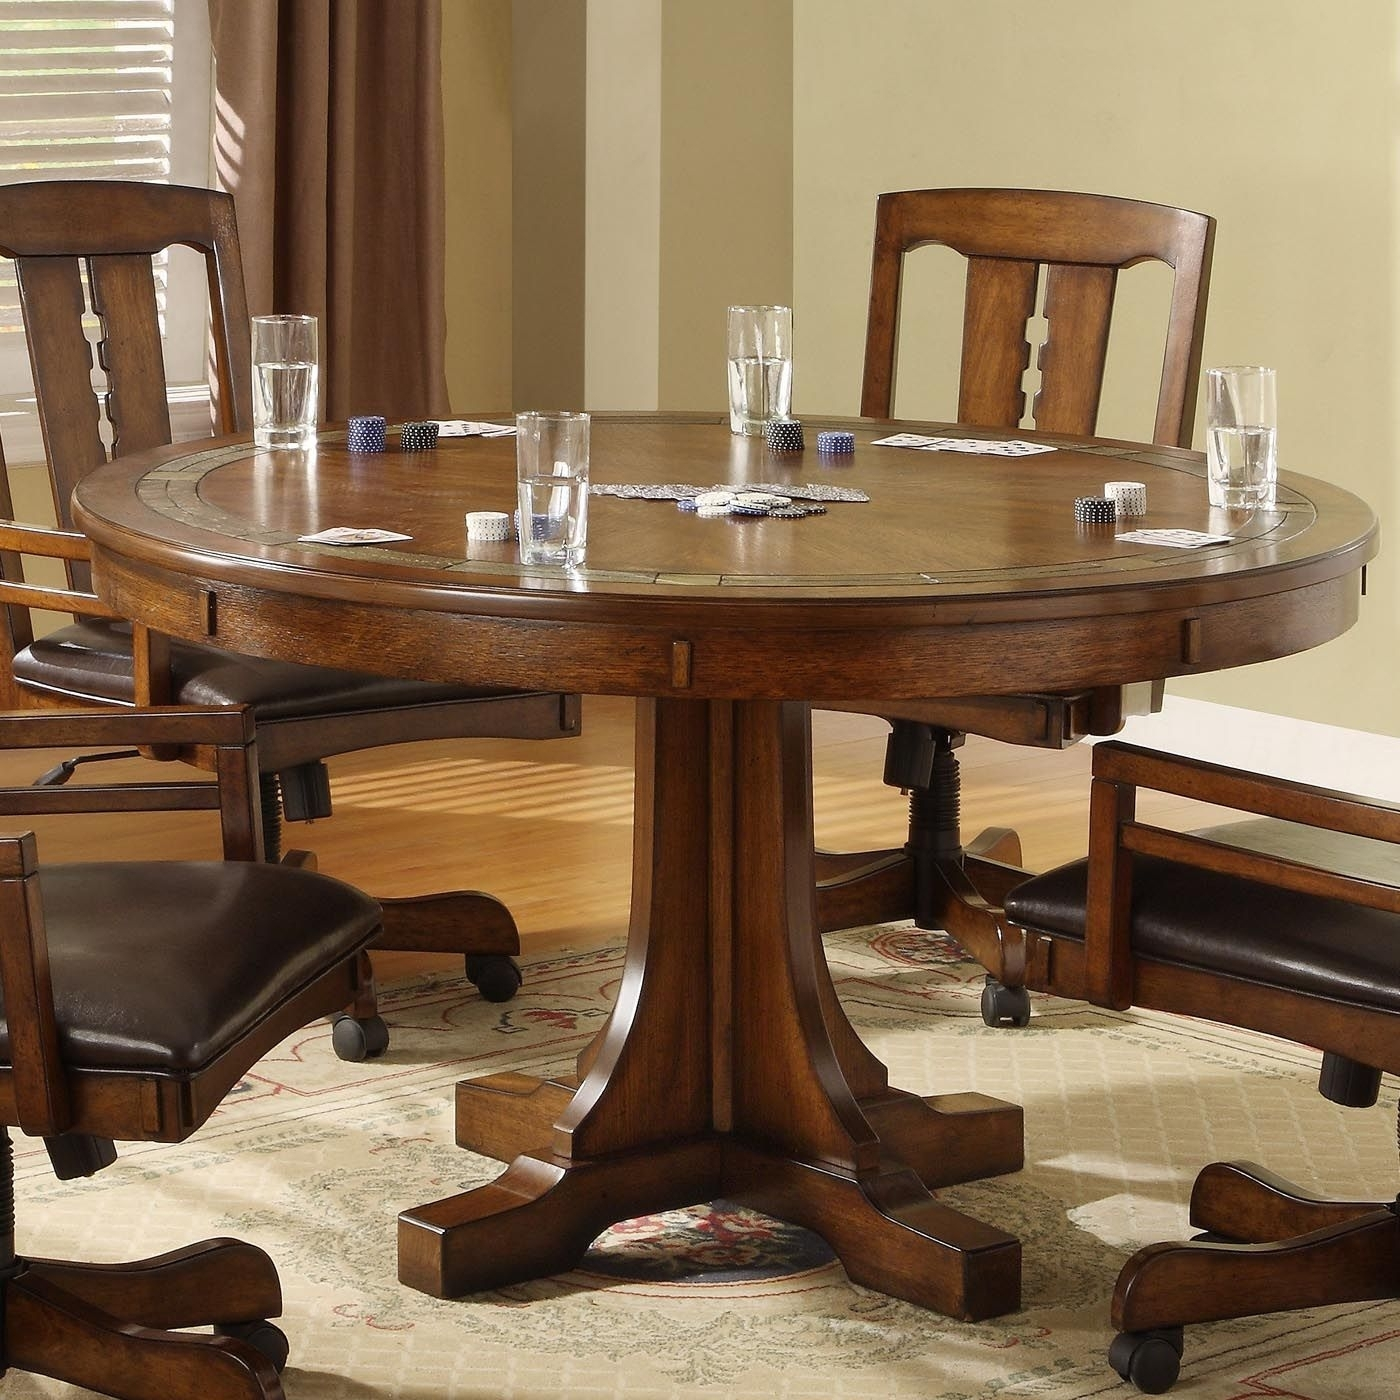 Craftsman Furniture | Riverside Furniture 295 Craftsman Home Convert Regarding Current Craftsman Round Dining Tables (Photo 12 of 20)